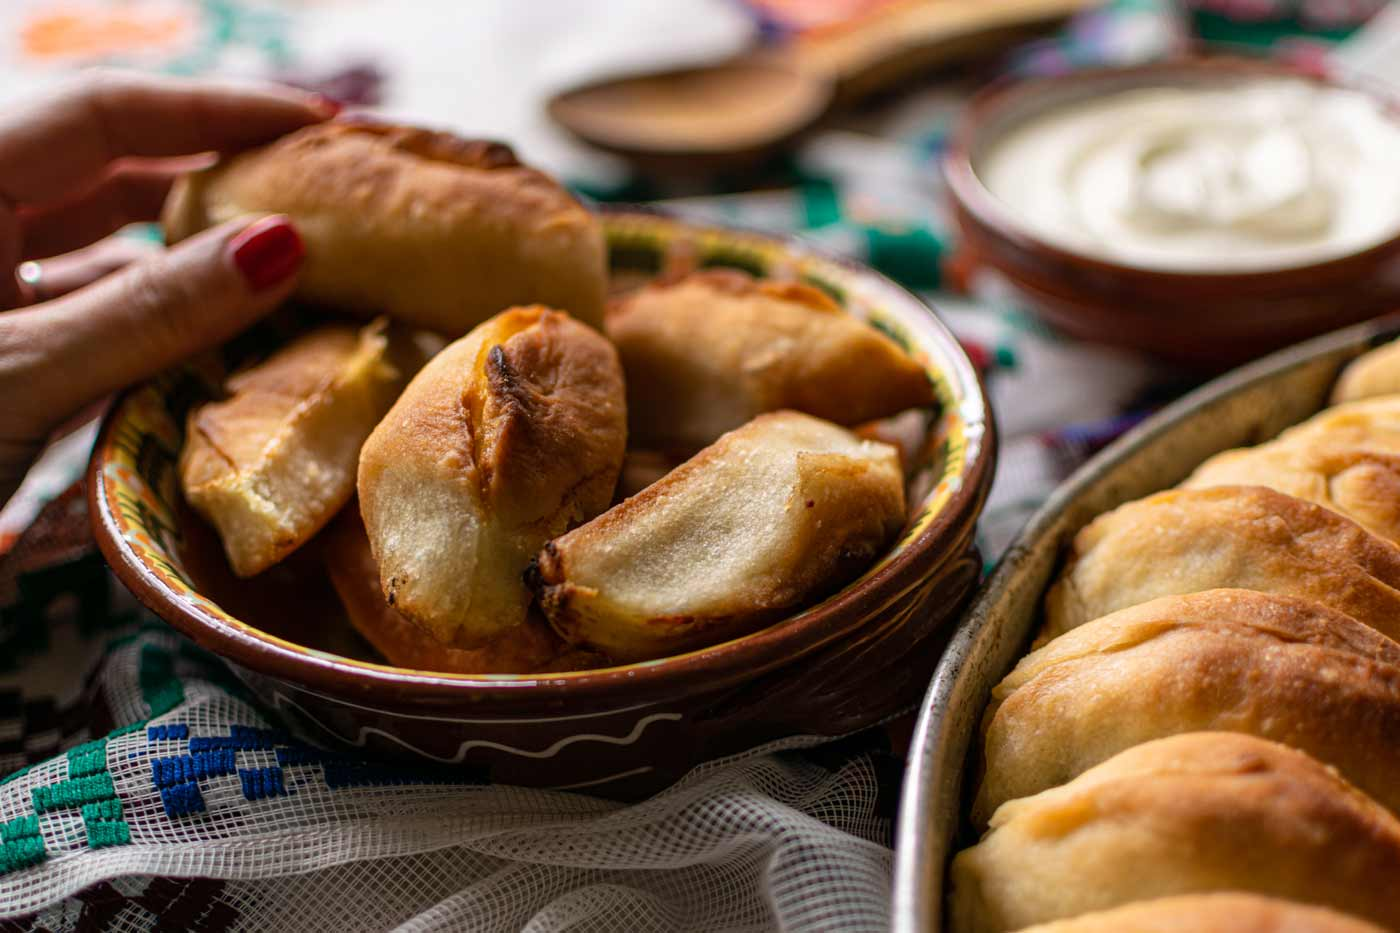 Meat hand pies in bowl with hand reaching for pie